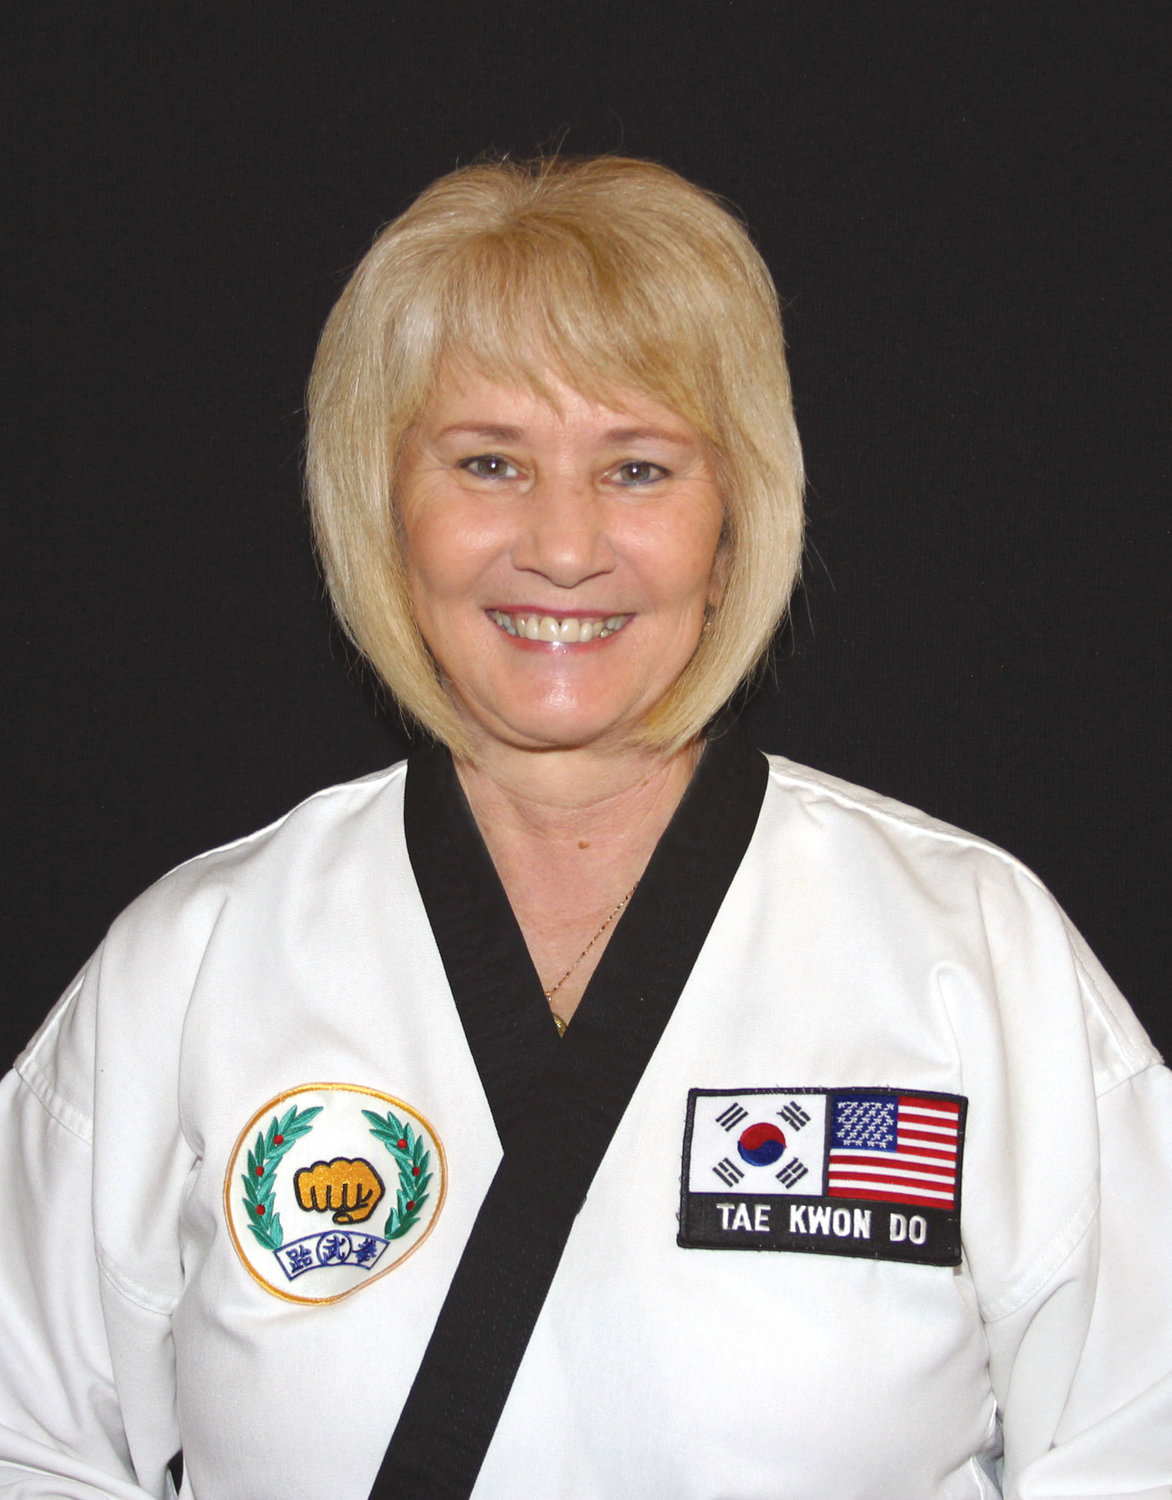 Master Peggy Jolly, is a 7th degree black belt in the Tae Kwon Do discipline.  She began her training in the 1970's as one of very few women in martial arts.